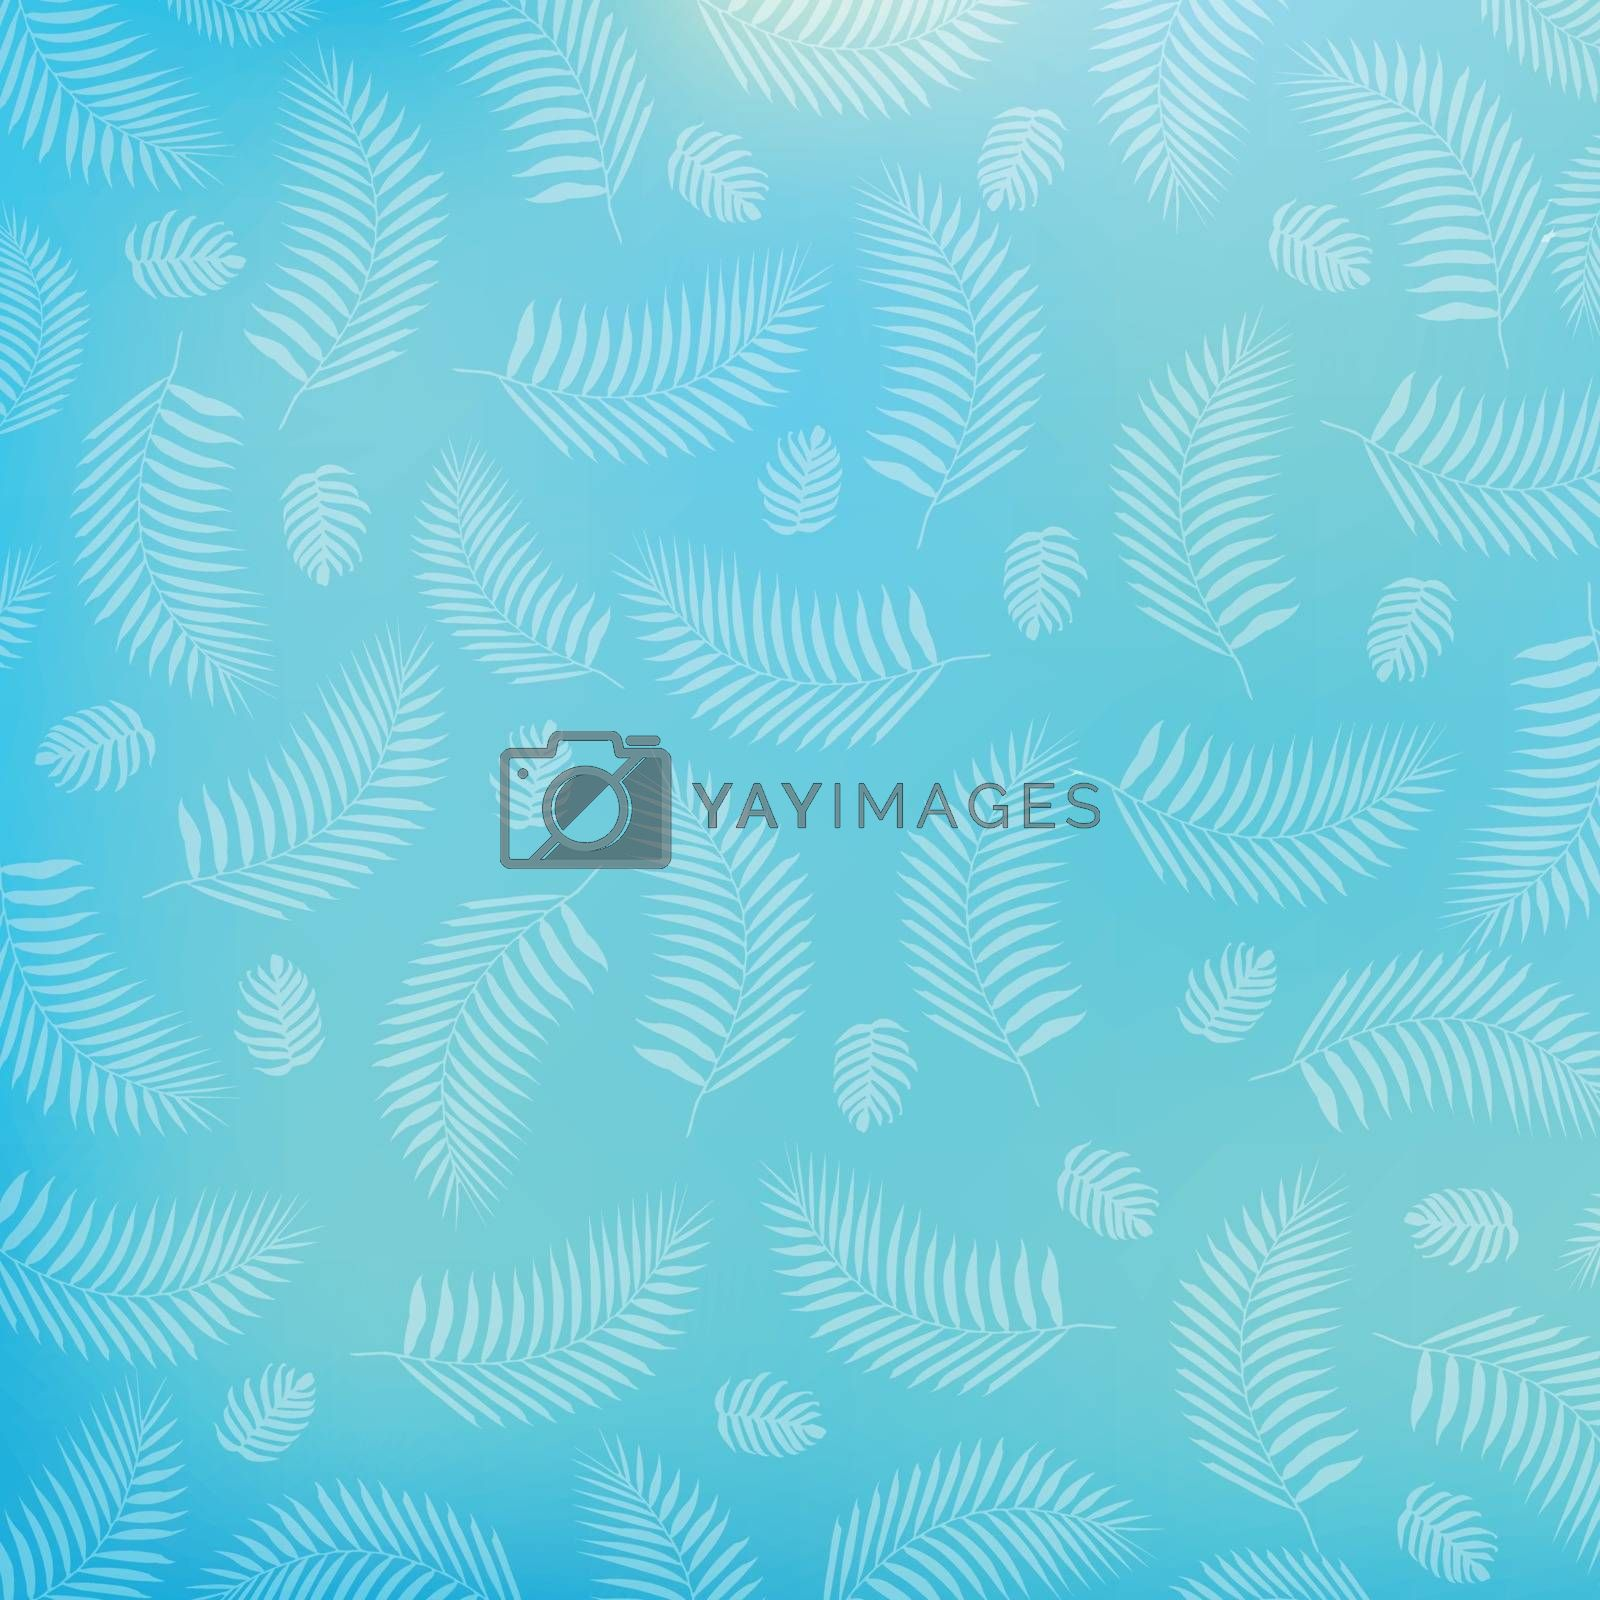 Summer tropical palm leaves pattern on blue background by phochi